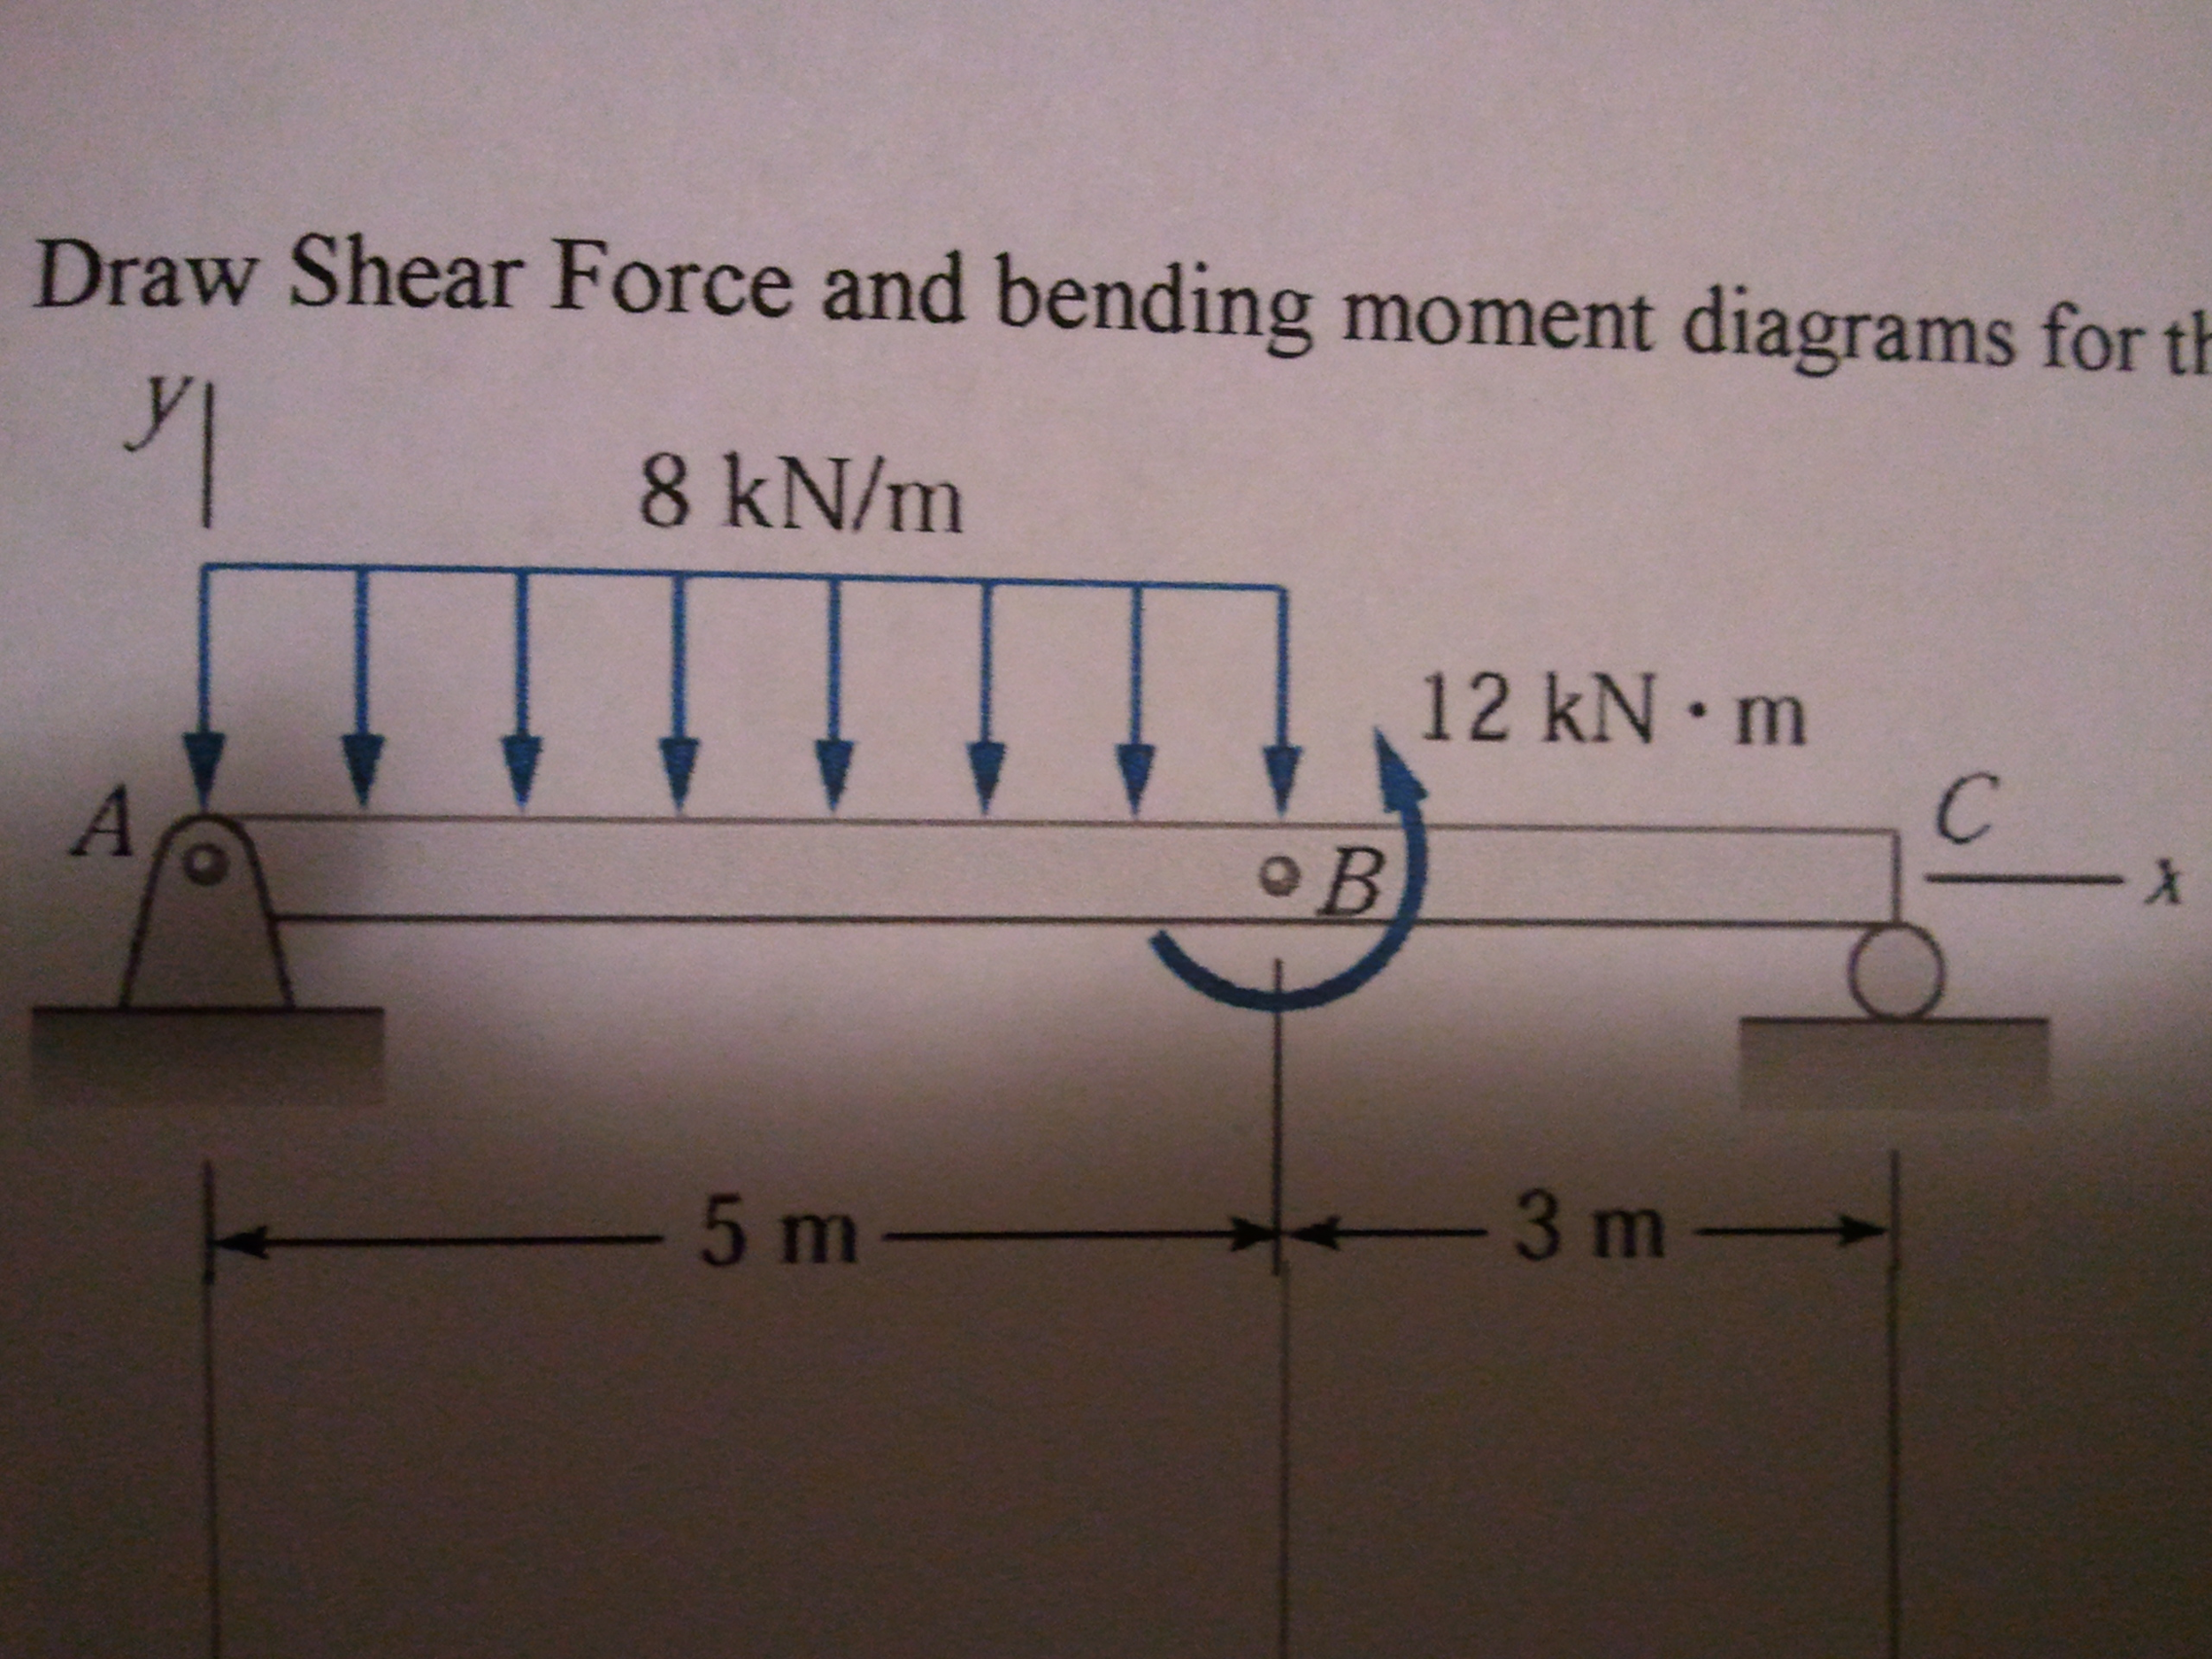 How To Draw Shear Force And Bending Moment Diagrams Manual Guide